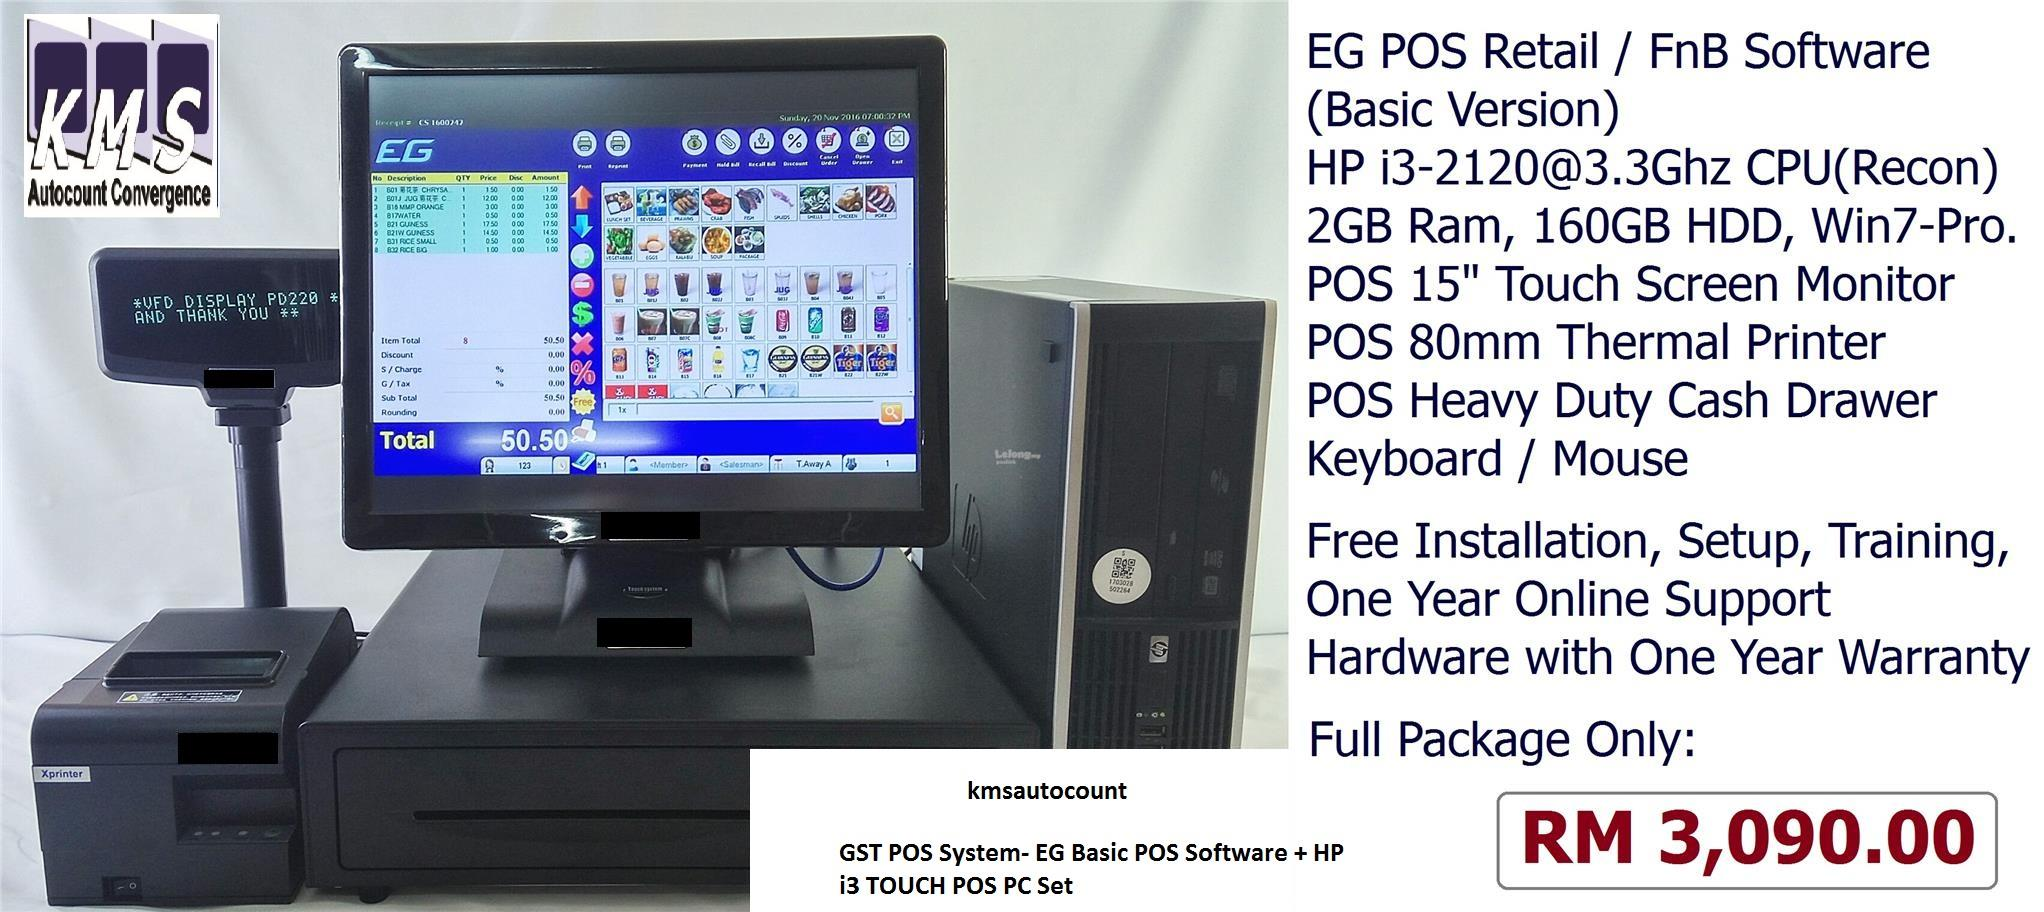 Gst Pos System Hp I3 15 Touch Scr End 2 27 2019 5 15 Pm